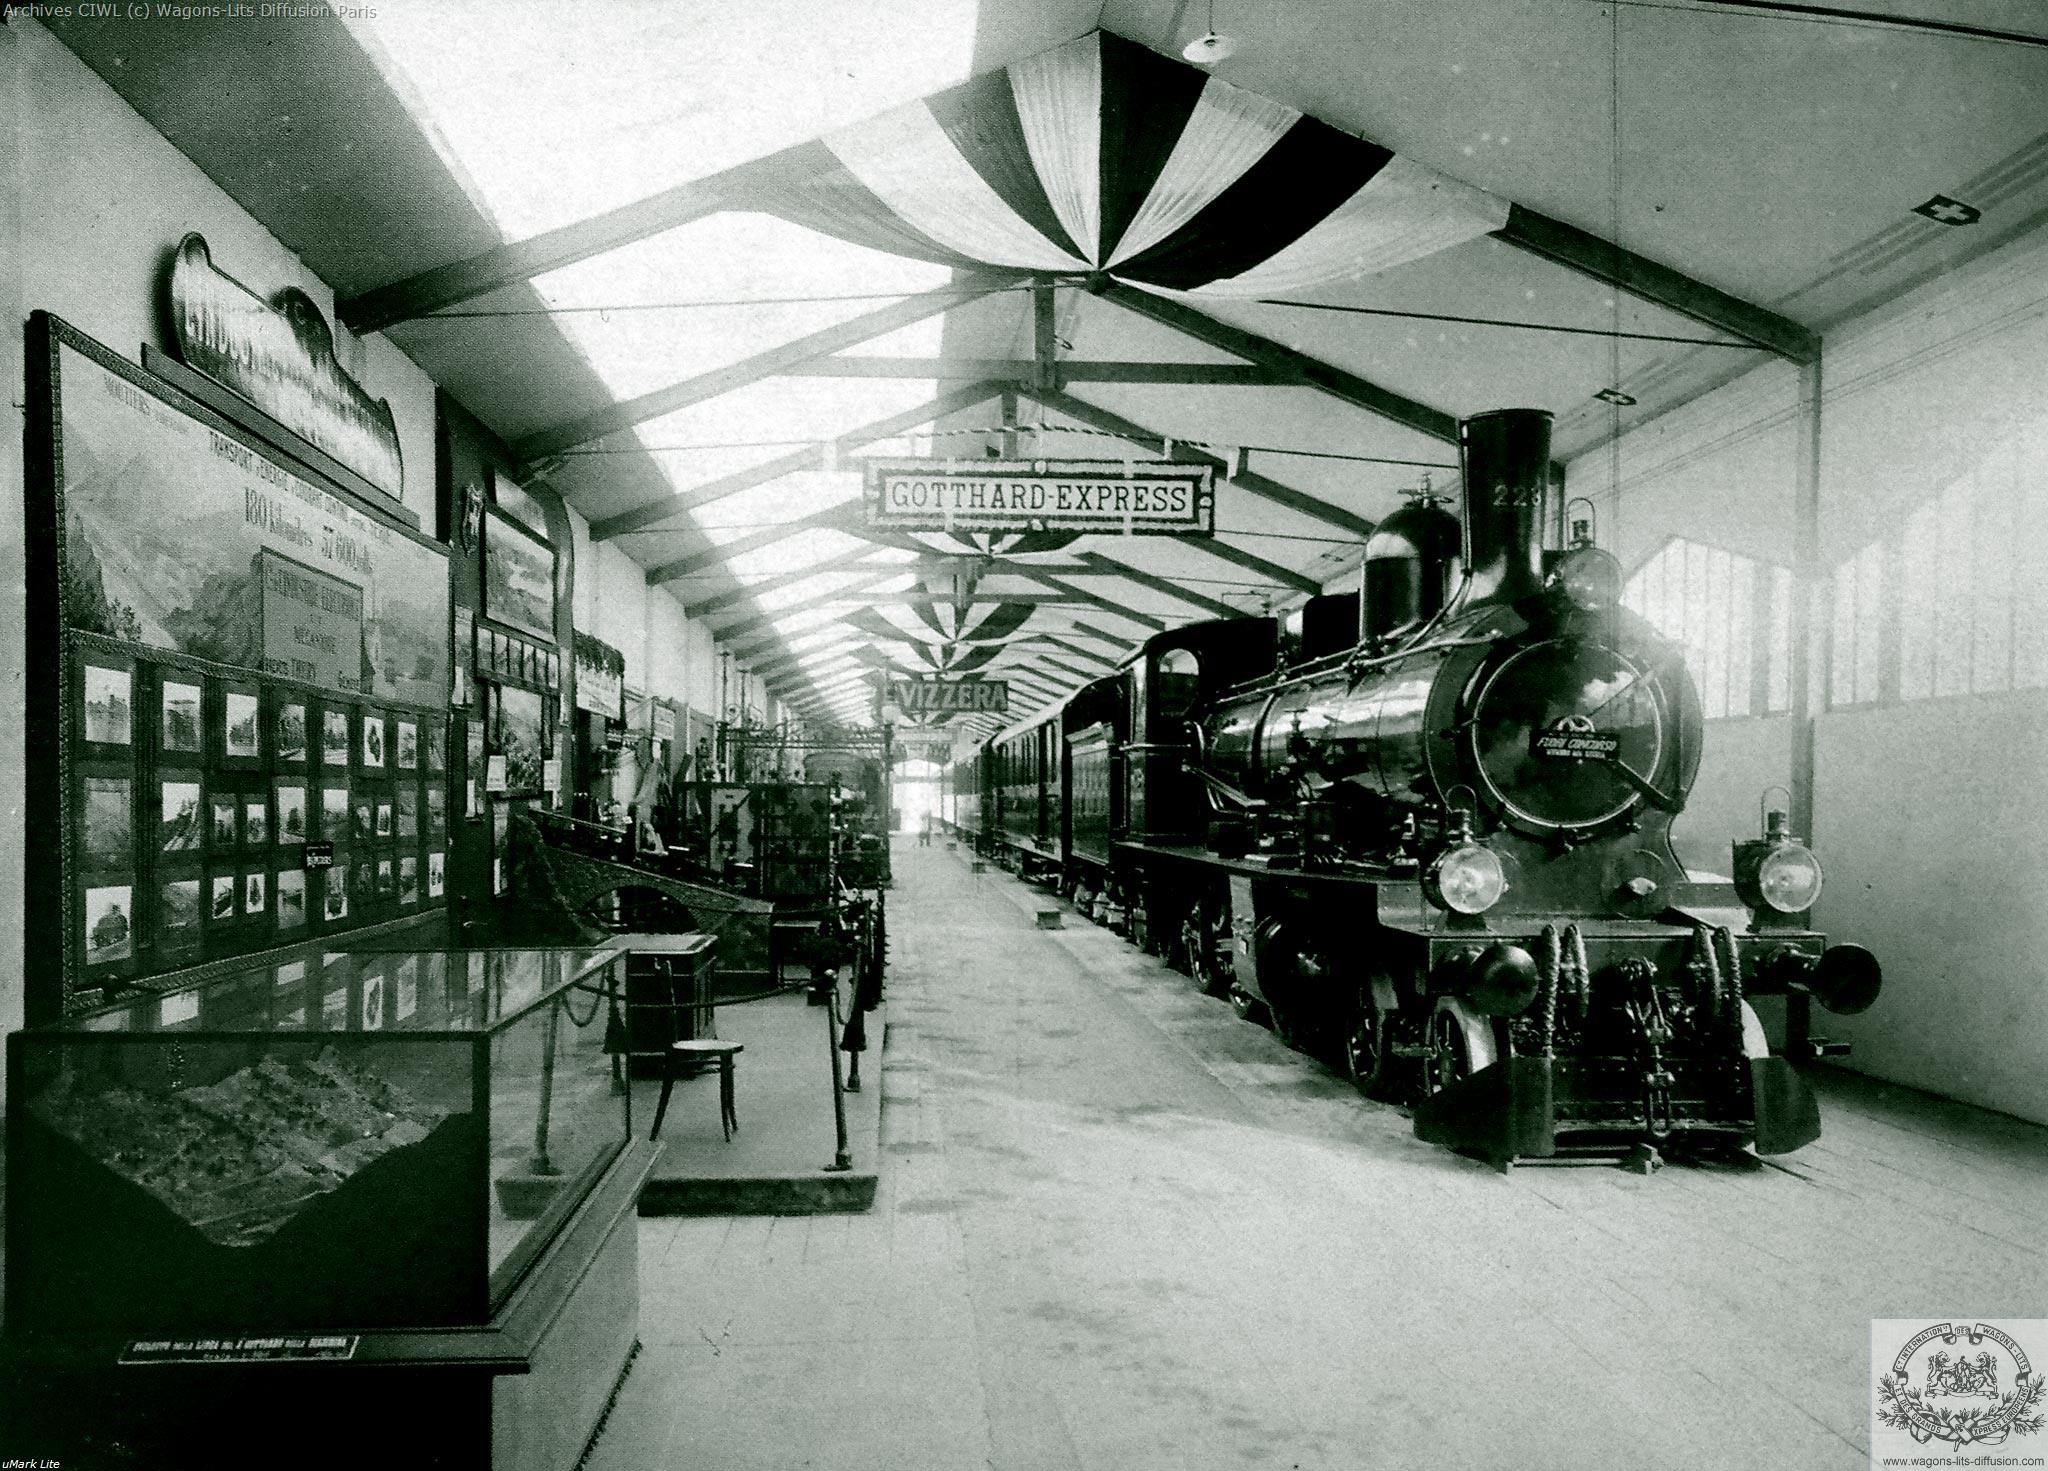 Wl switzerland gotthard express milan expo 1906